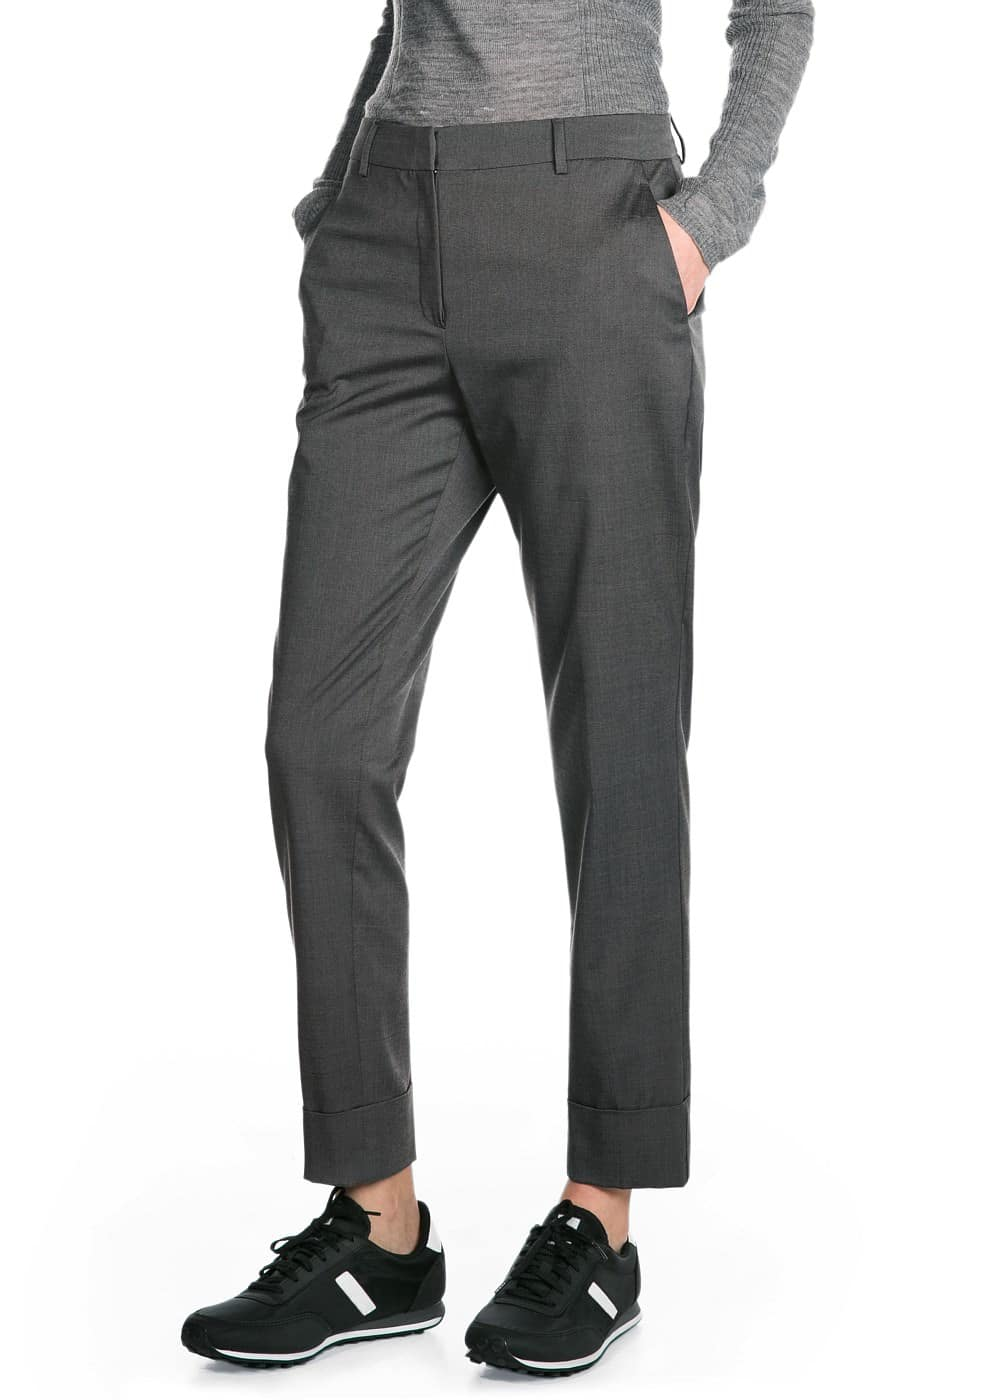 PREMIUM - Bird's eye trousers